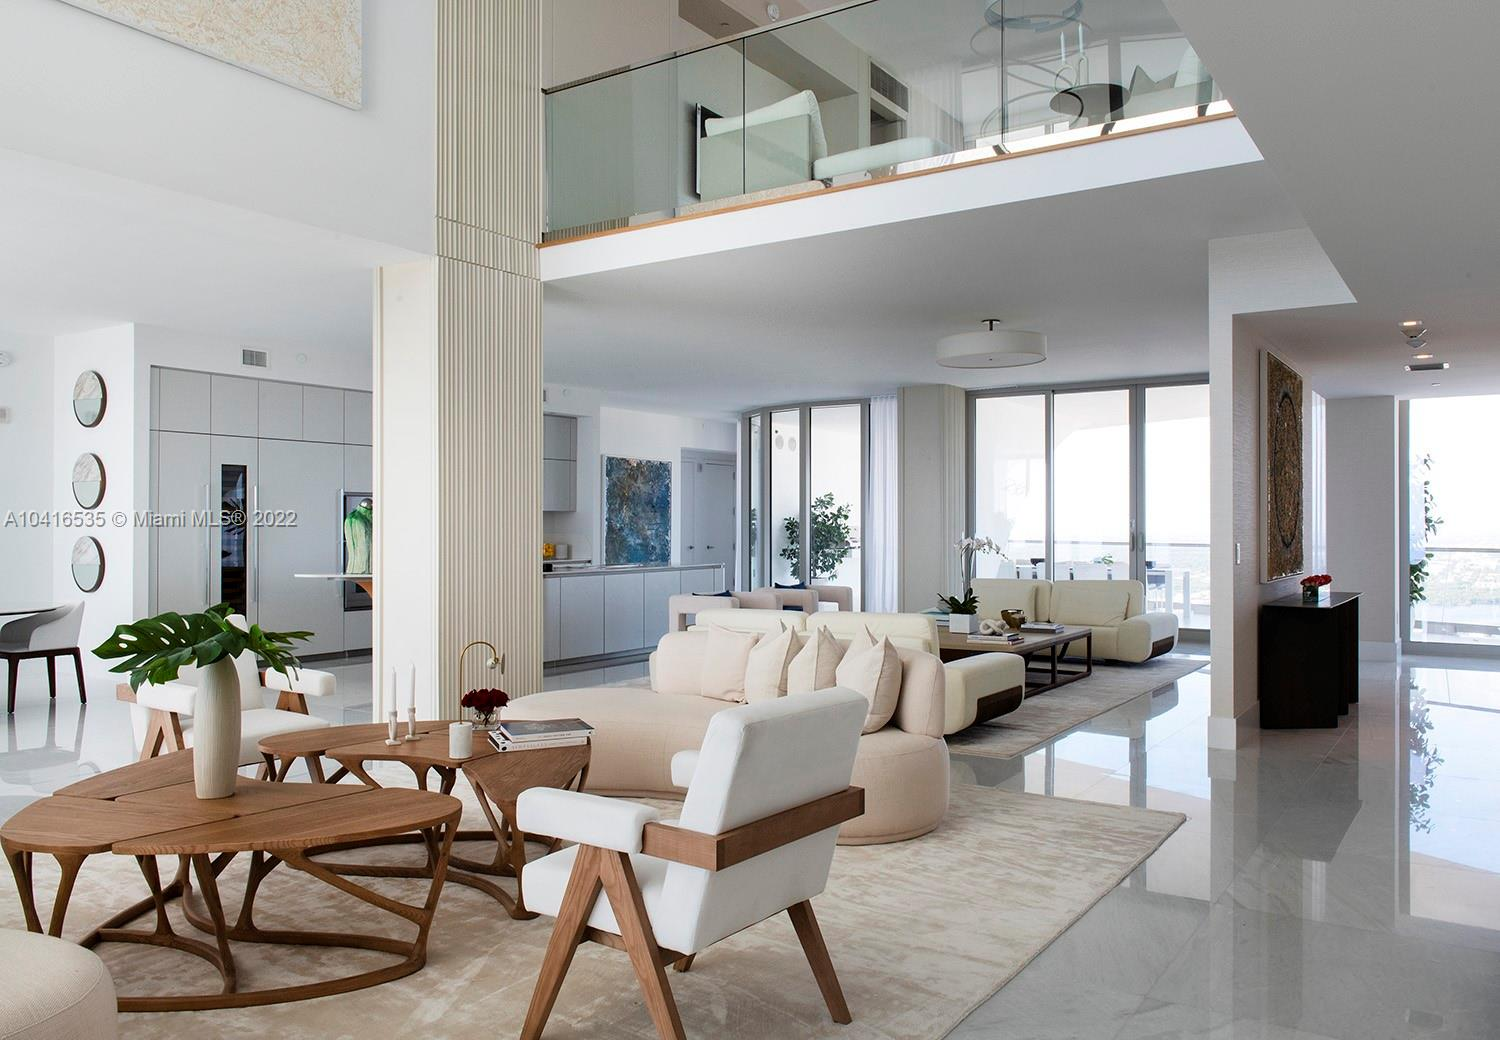 Developer unit. a must see! unobstructed views of the ocean and intracoastal - enormous terraces. Decorator ready